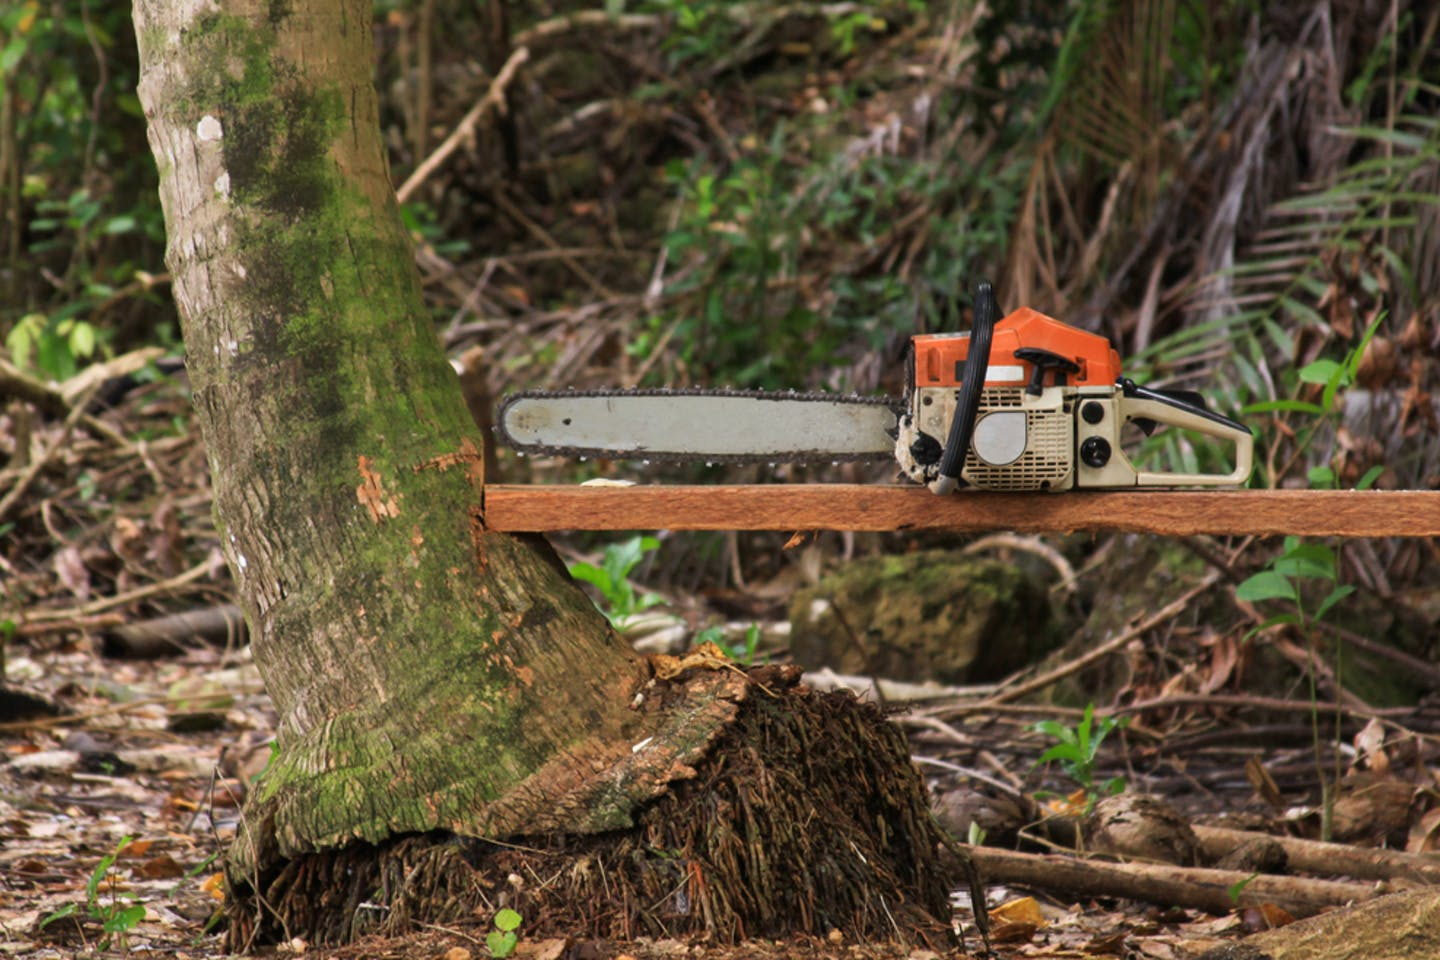 Chainsaw used to cut forests in Sumatra, Indonesia.